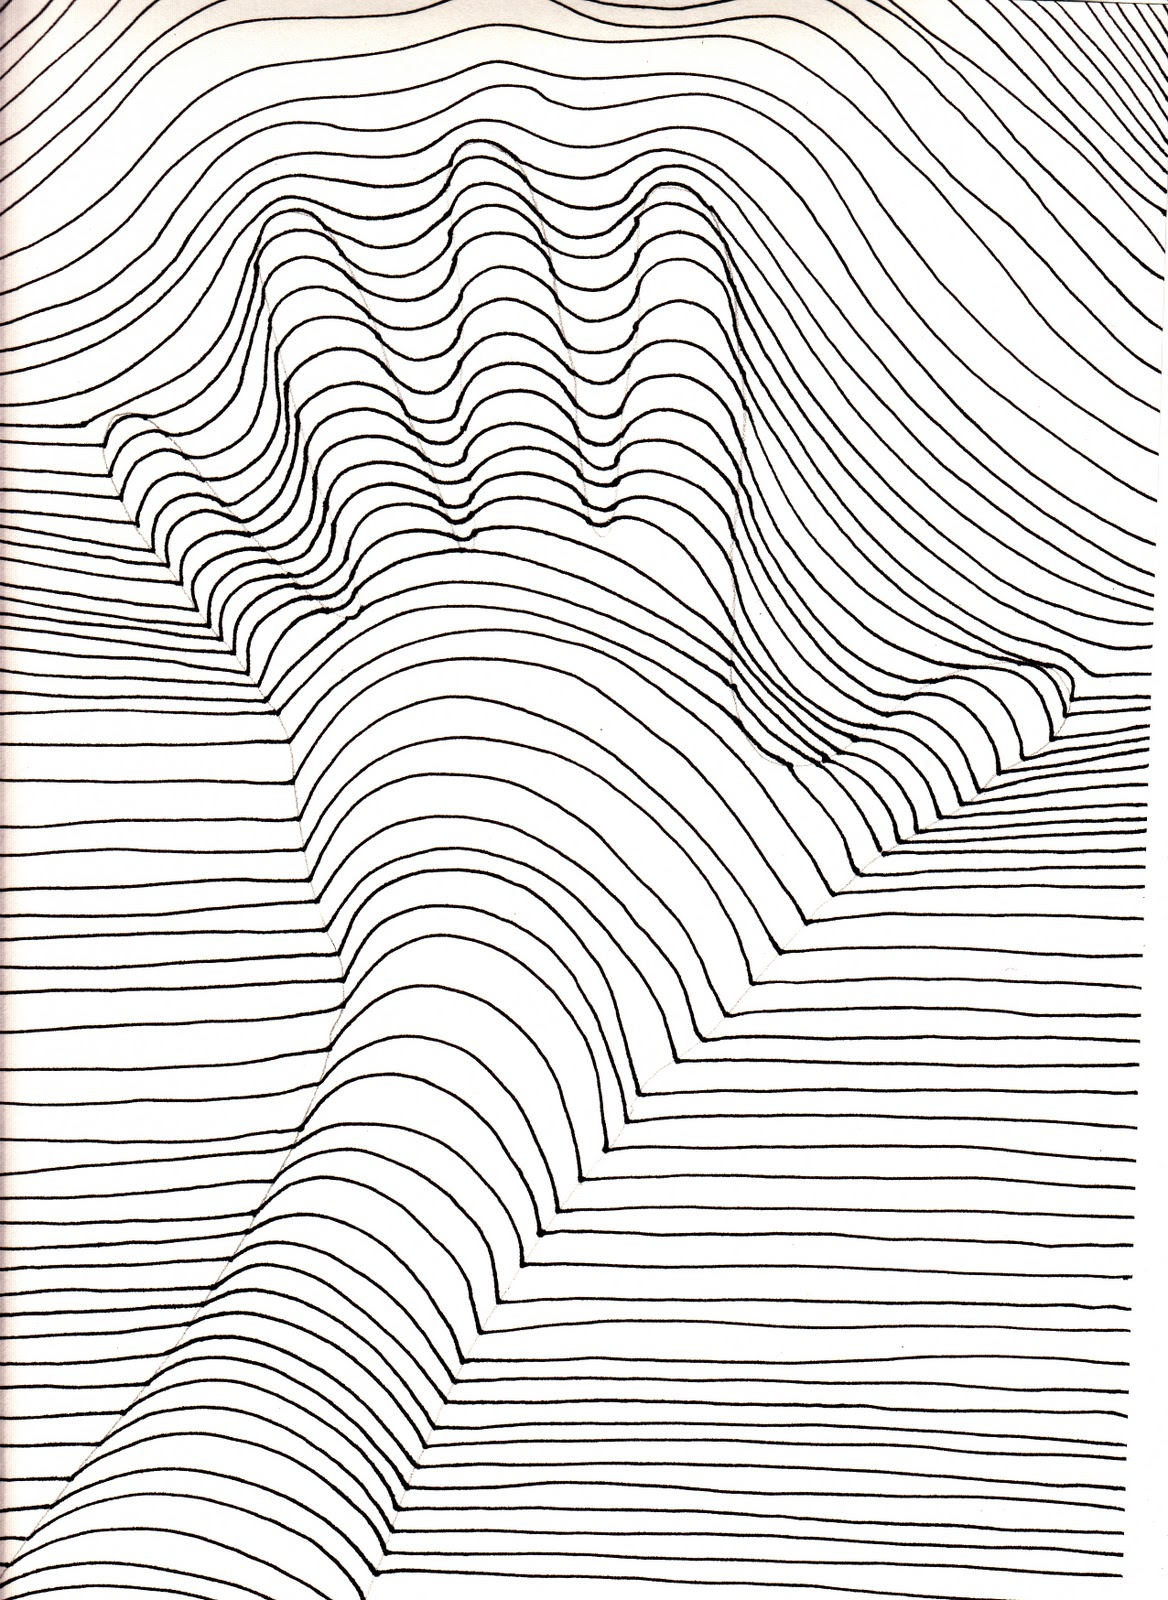 Using Lines In Drawing : The creative spirit op art hands that pop